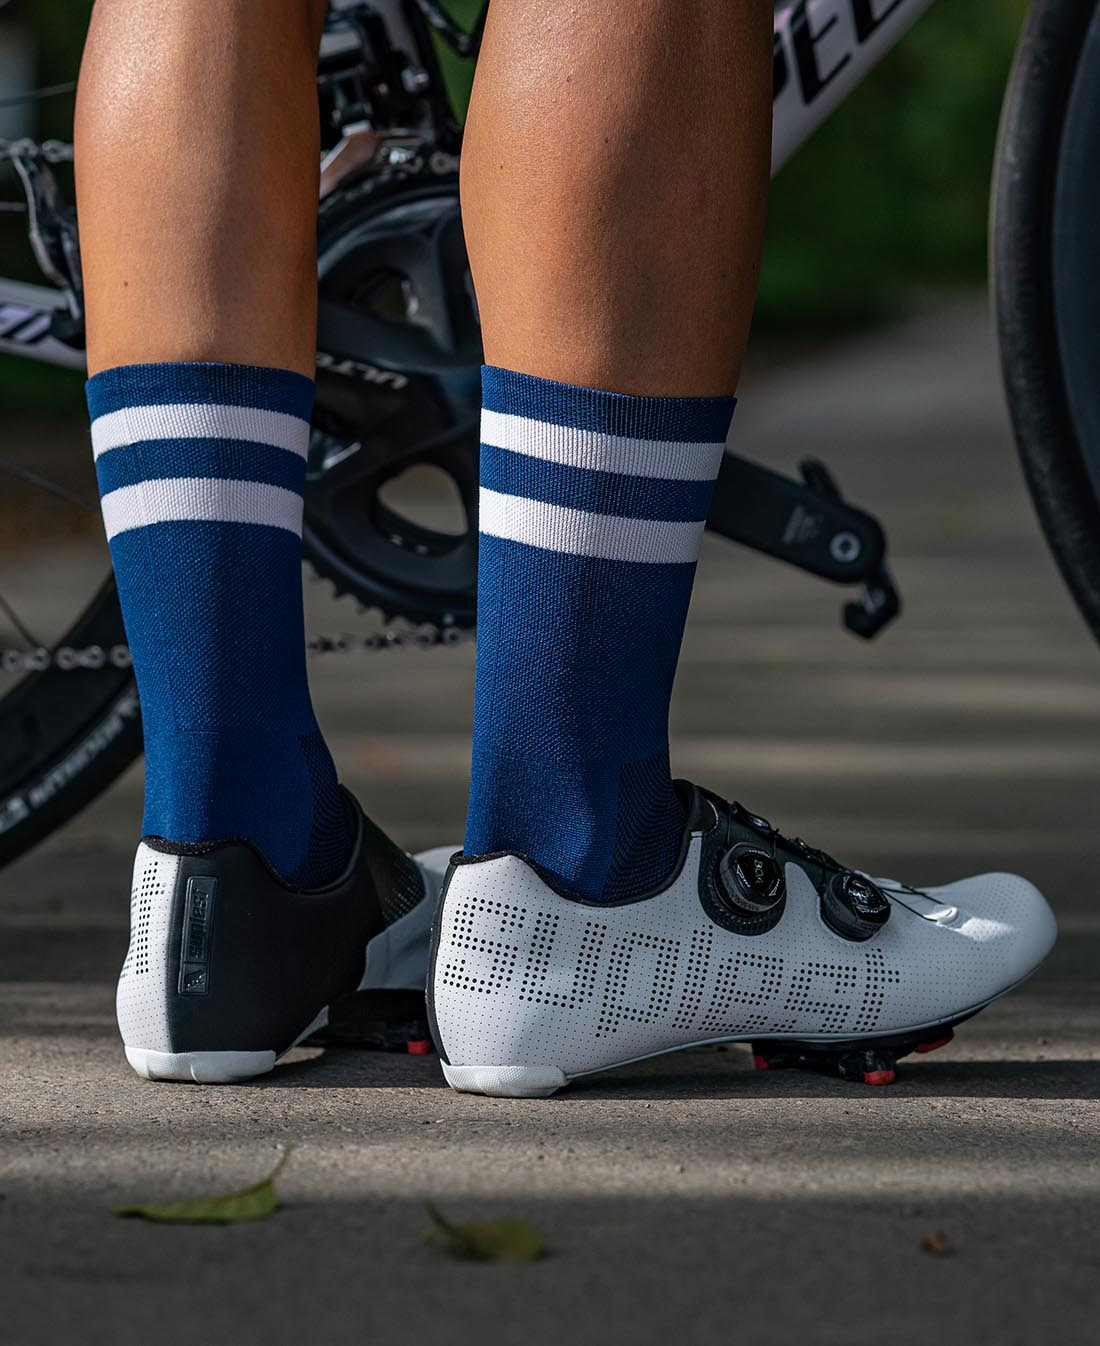 luxa navy socks with double white stripes and specialized bikes